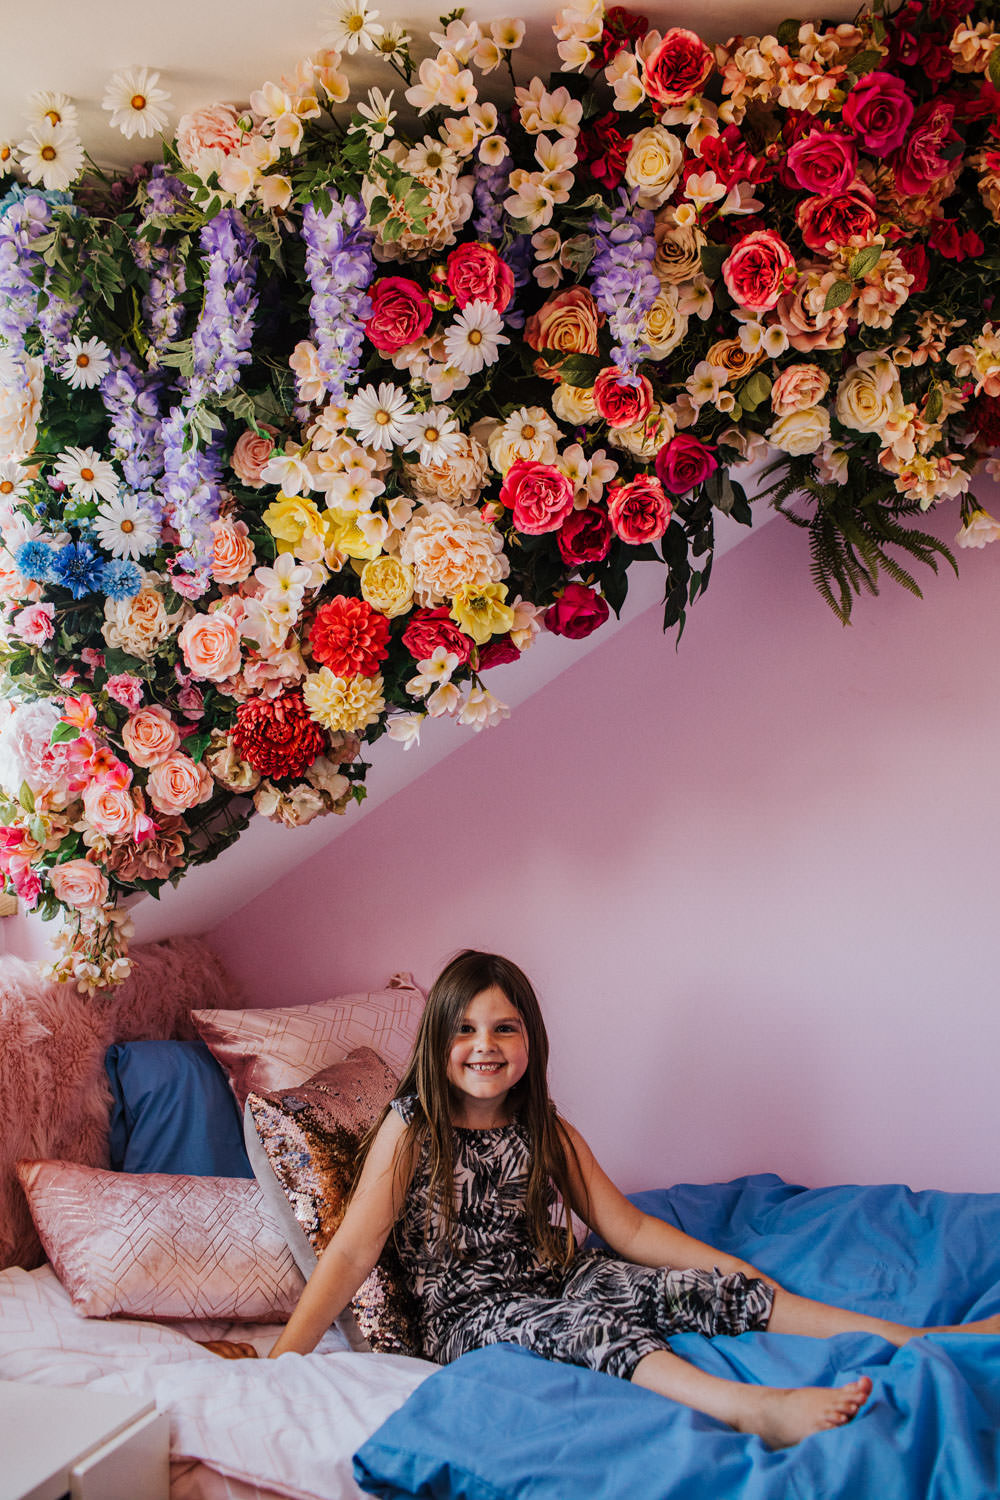 early hours at home, early hours florist, Early Hours London, early hours ltd, floral wall, flower inspired kids bedroom, garden of eden, girls bedroom inspiration, home floral wall, indoor floral wall